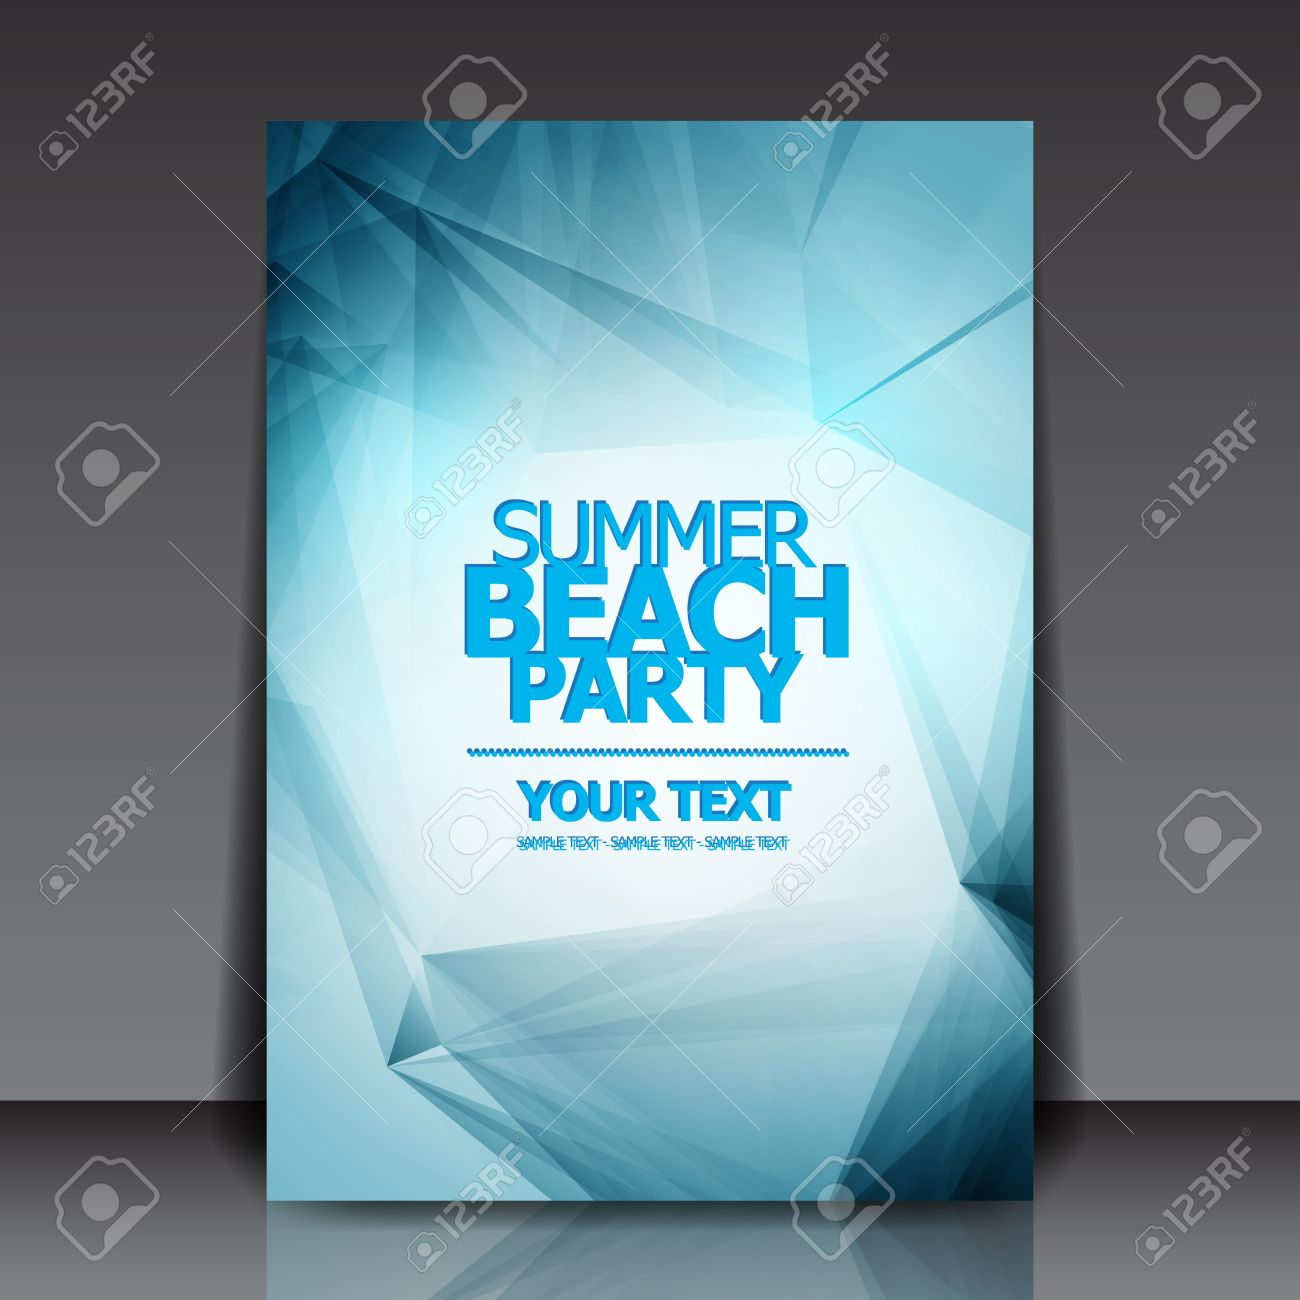 Design for Summer Party Flyer Stock Vector - 18946501